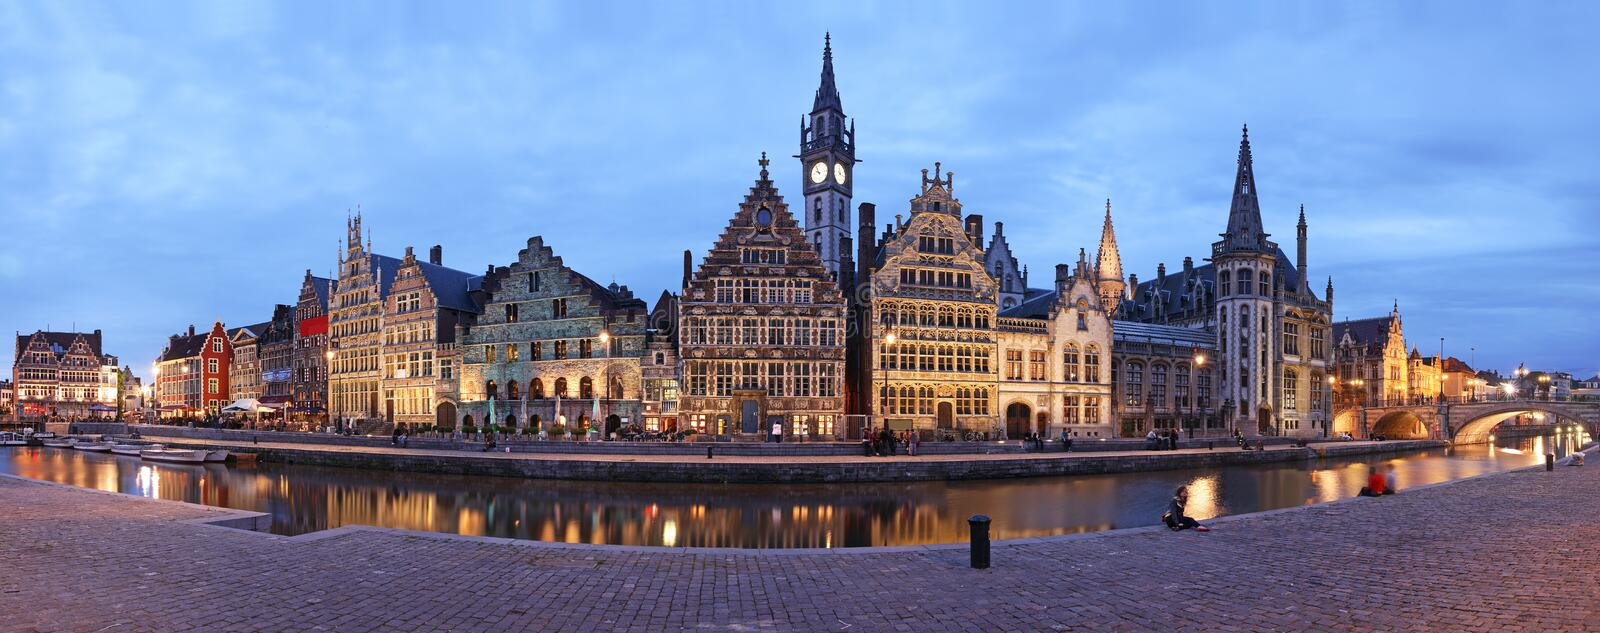 Ghent XXL Panorama stock images